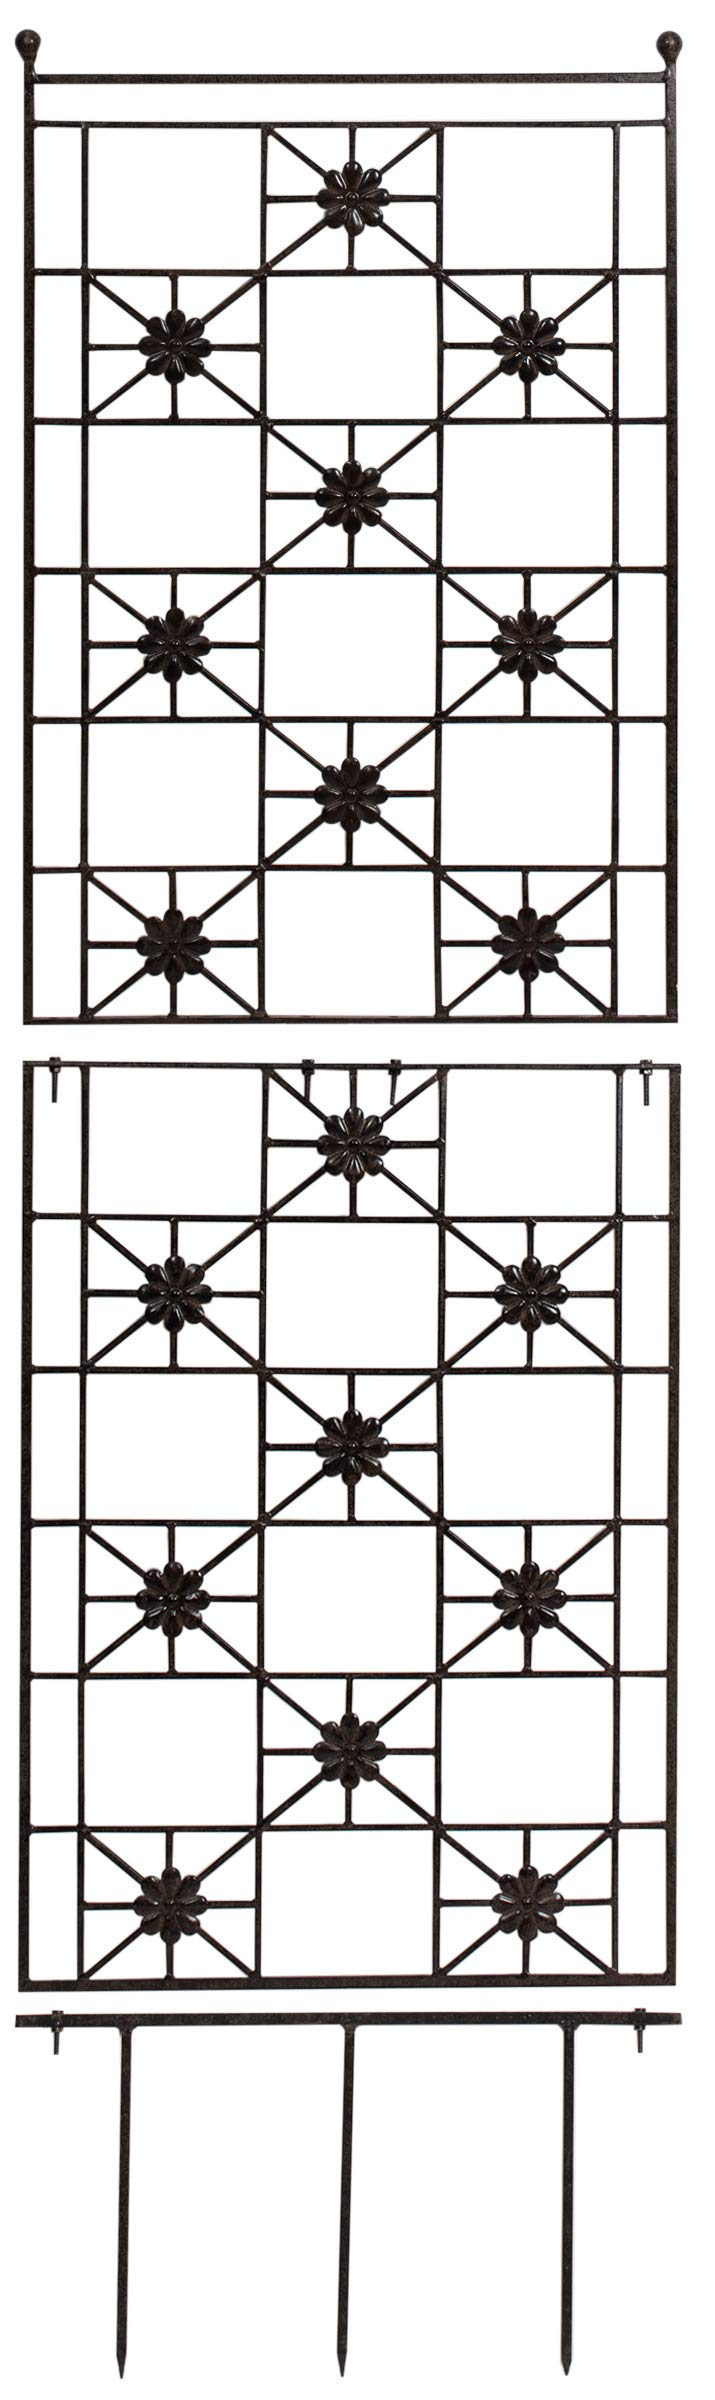 H Potter 5.5 Foot Tall Garden Flower Trellis Wrought Iron Heavy Scroll Metal Decoration Lawn, Patio & Wall Decor Screen for Rose, Clematis, Ivy Patio Deck Wall Art by H Potter (Image #2)